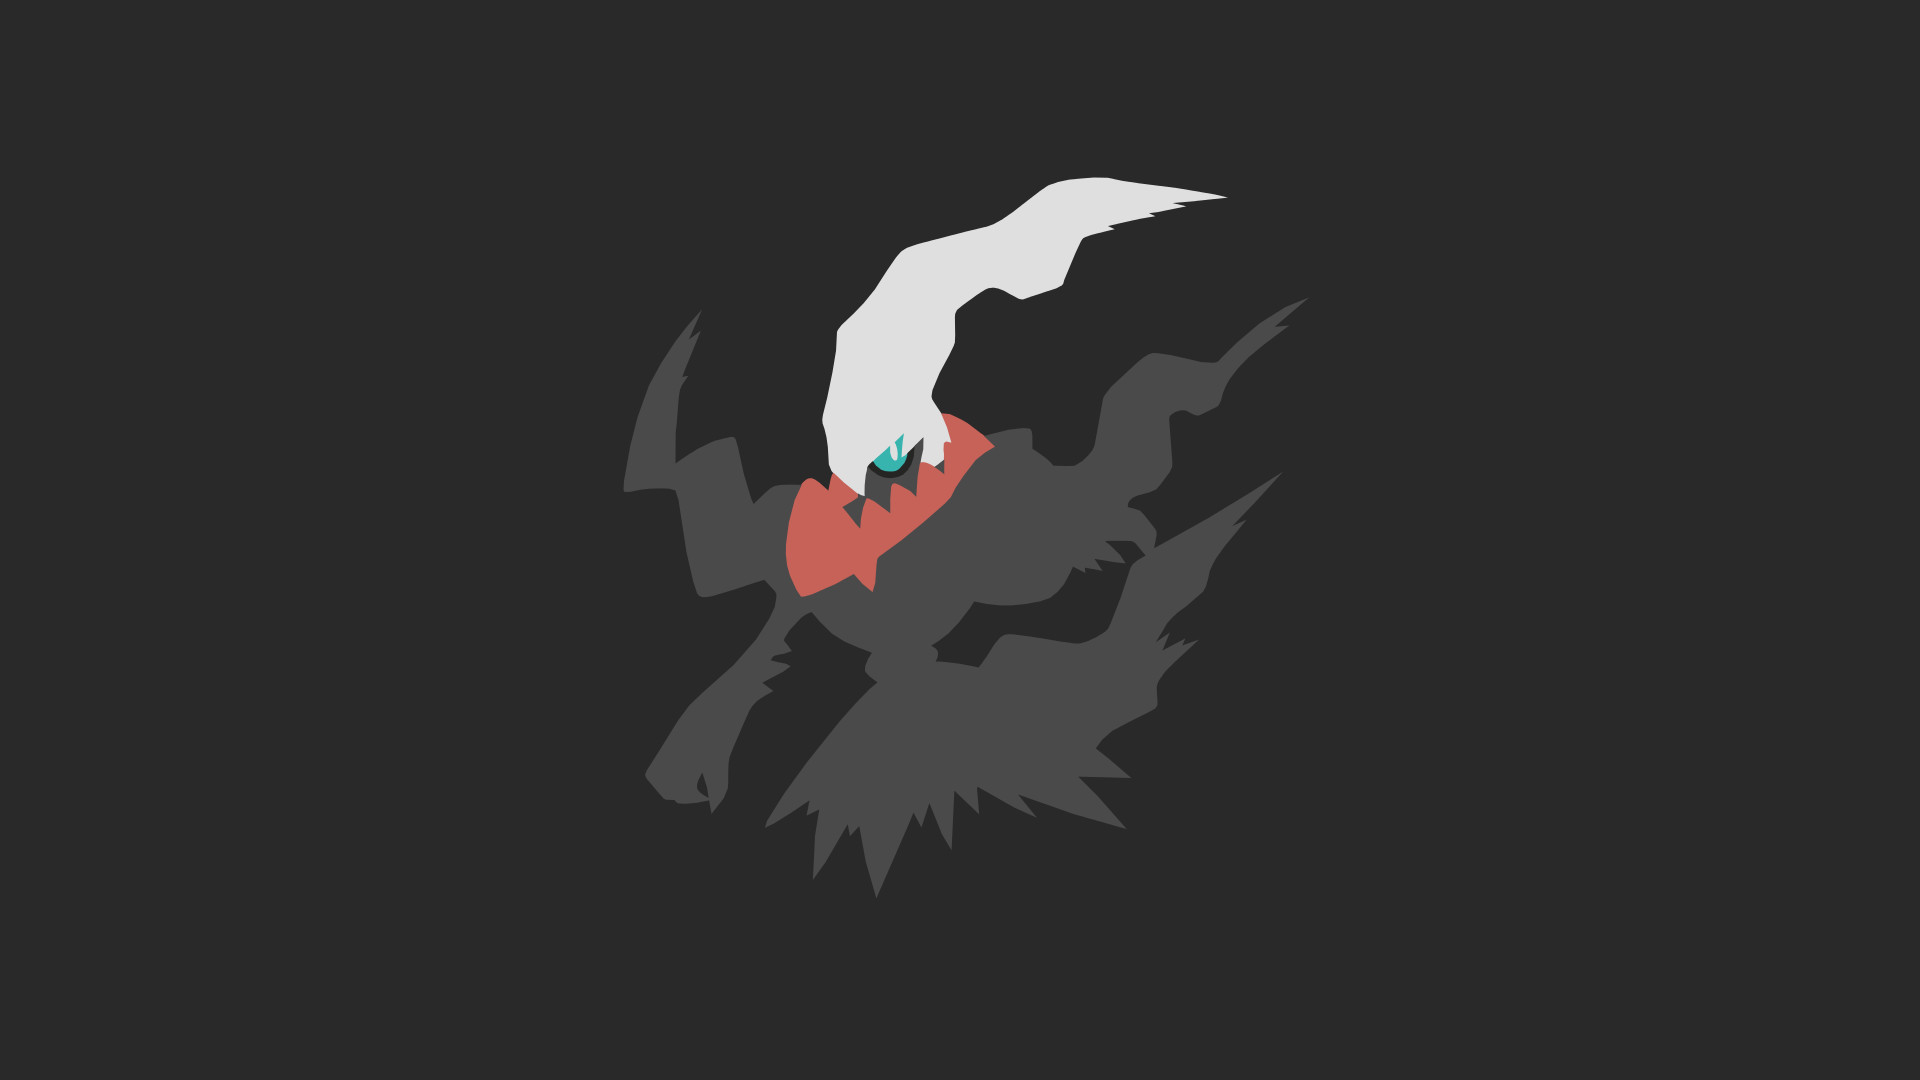 1920x1080 ... Minimalistic Wallpaper: Darkrai (#491) by MardGeerT